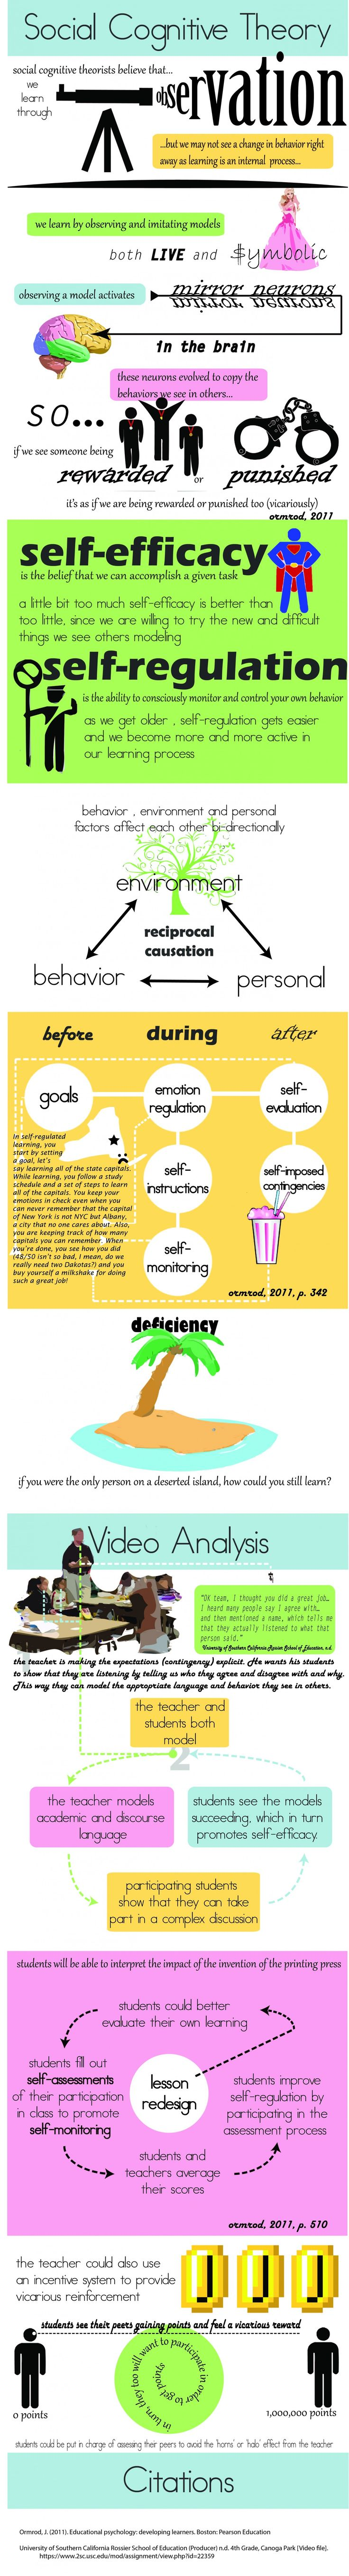 zoltan dienes' six stage theory of learning Zoltan dienes' principles of mathematical learninghave been an integral part of mathematics education literatureand applied both to the teaching and learning of mathematics aswell as research on processes such as abstraction andgeneralization of mathematical structures most extanttextbooks of.